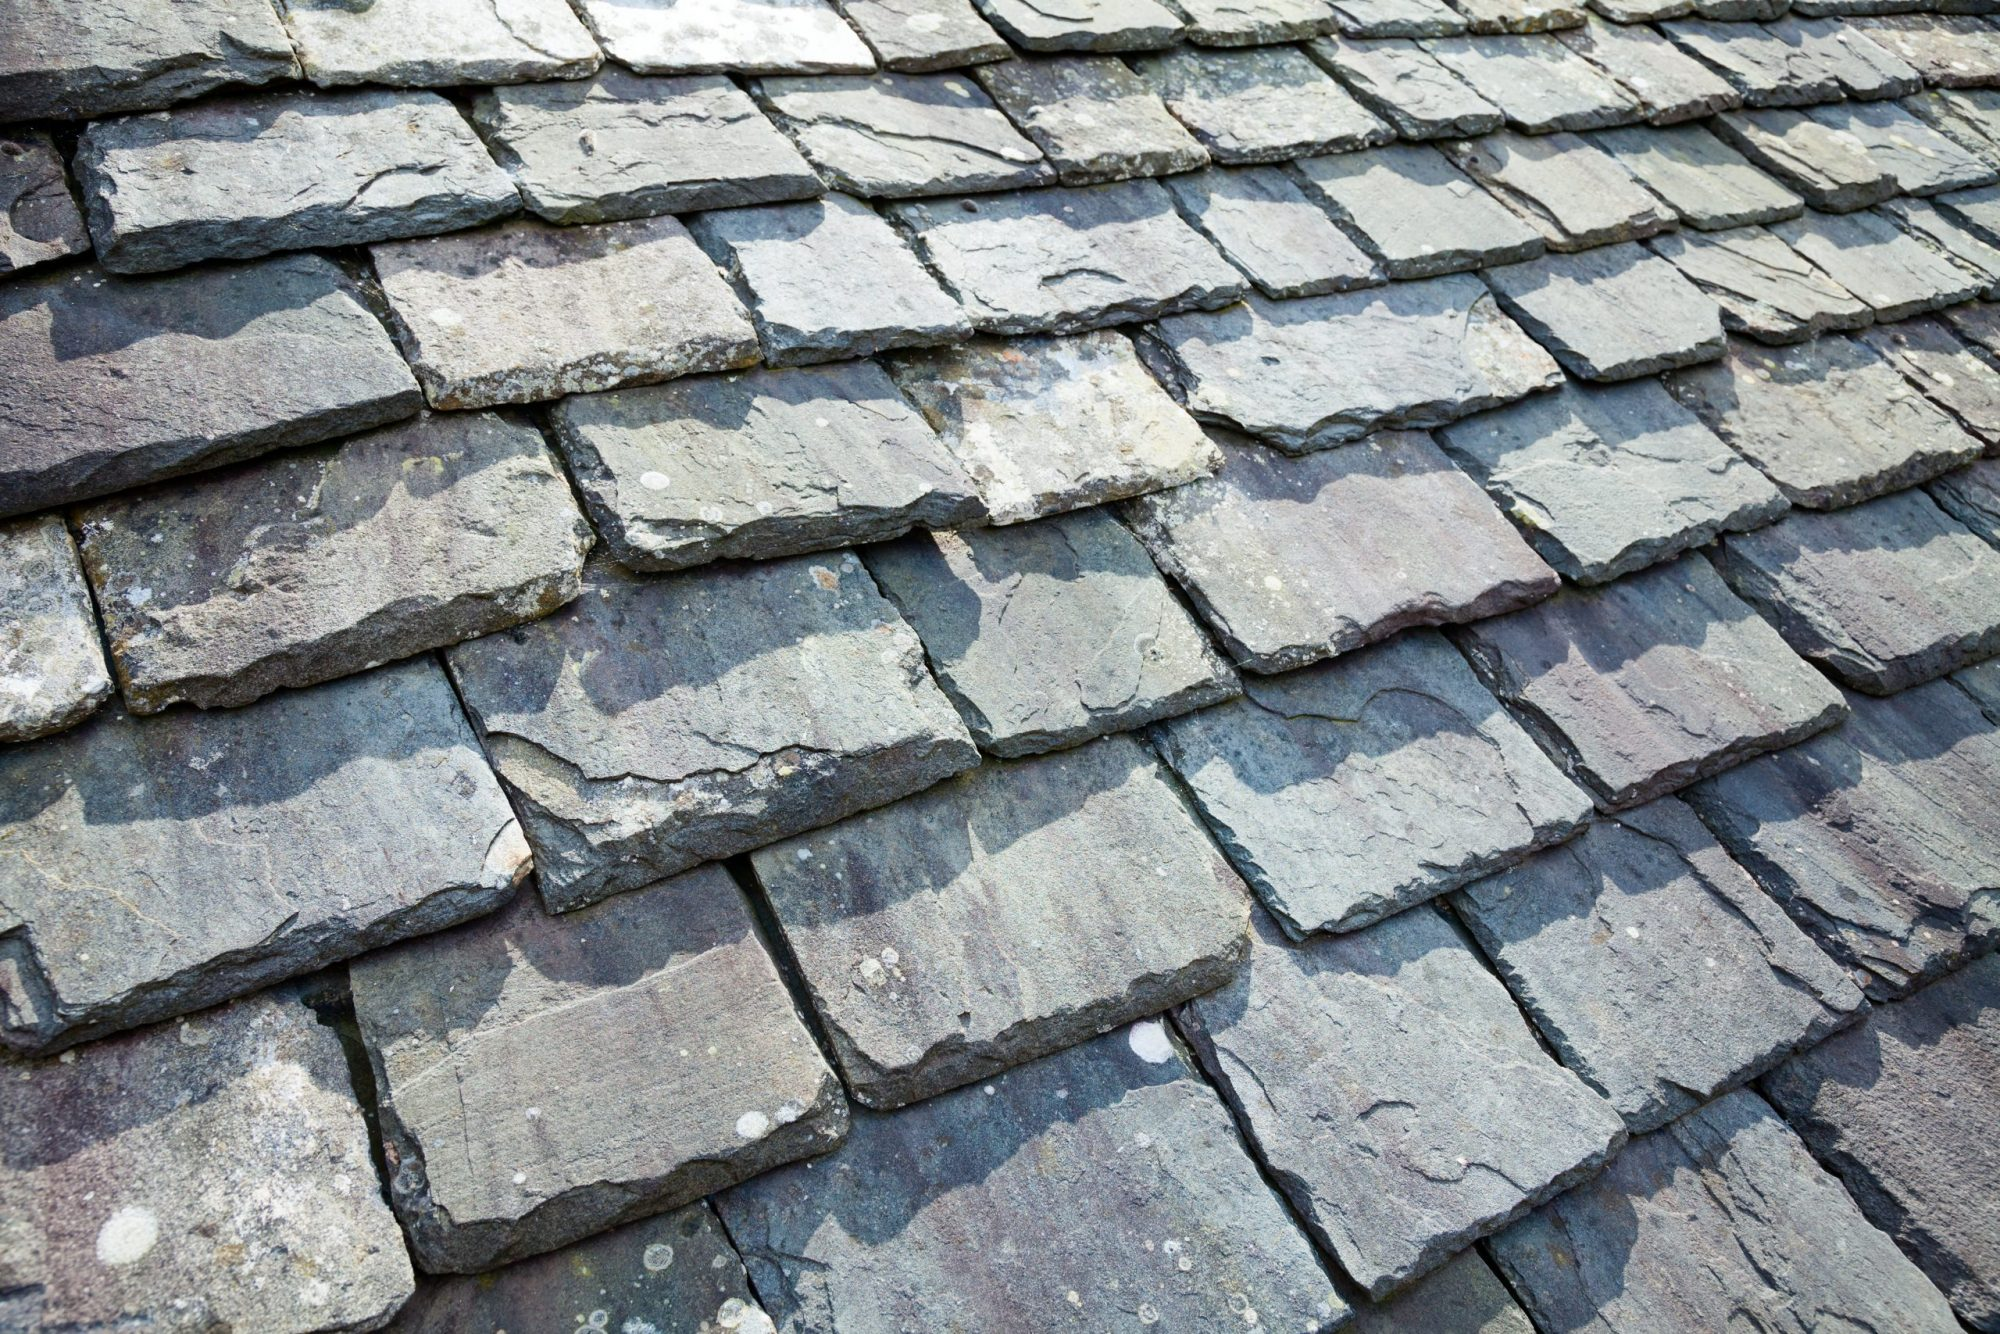 synthetic slate roof stone tile roofing contractor st louis missouri webster groves creve coeur chesterfield ladue town and country eureka roofer roofs new roof installation roof replacement composite slate roof